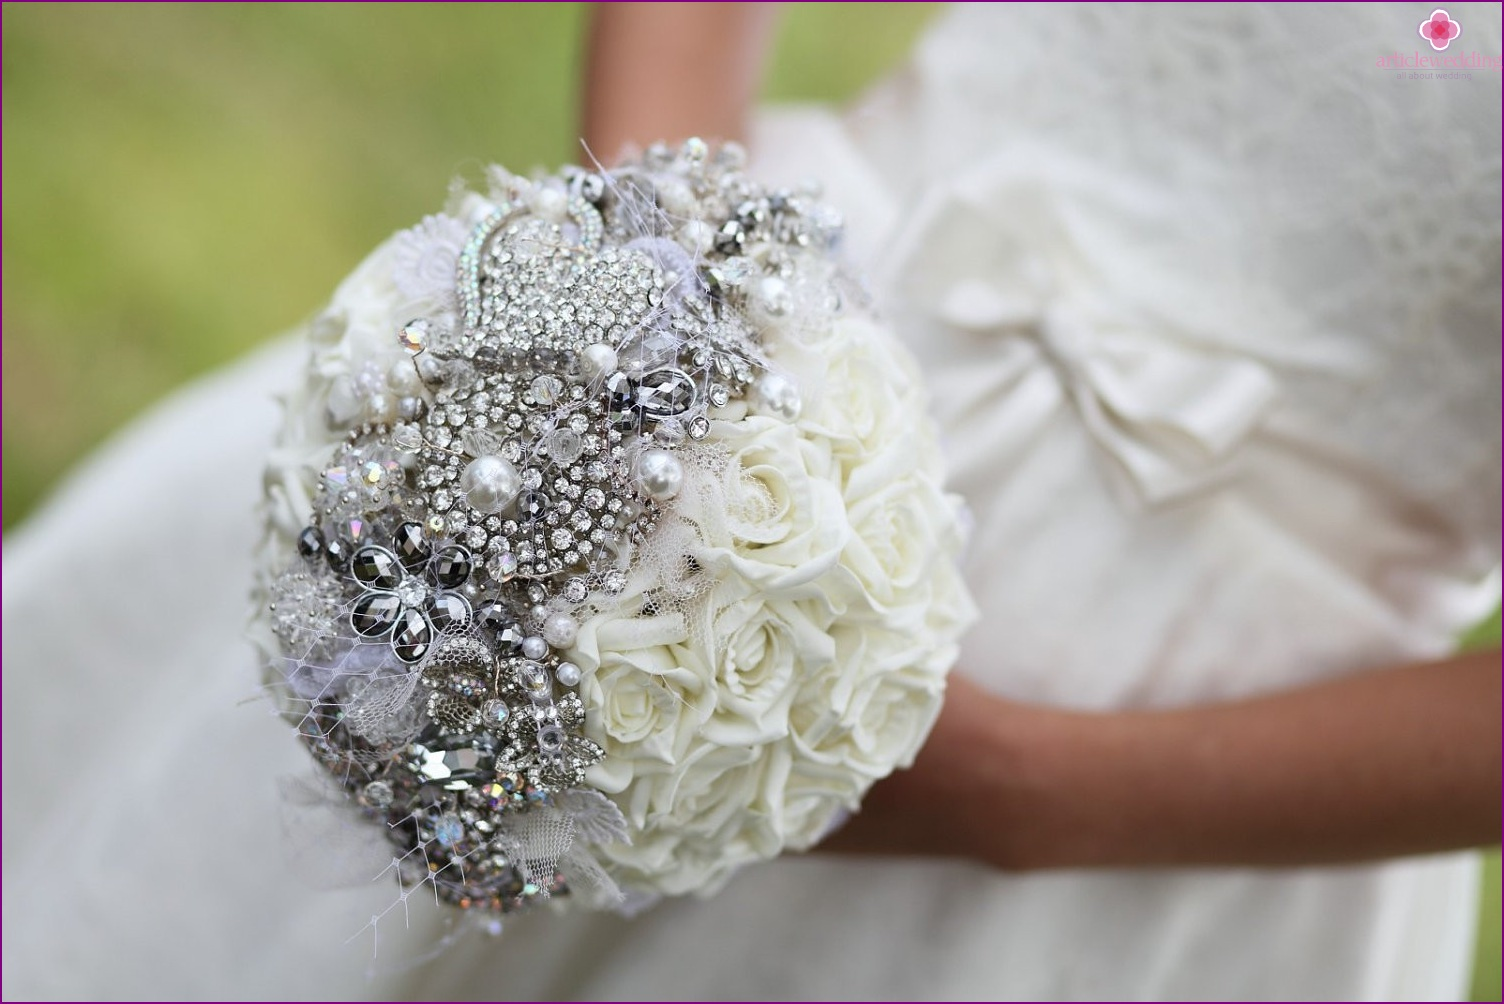 Bouquet in the style of a fairy tale Cinderella